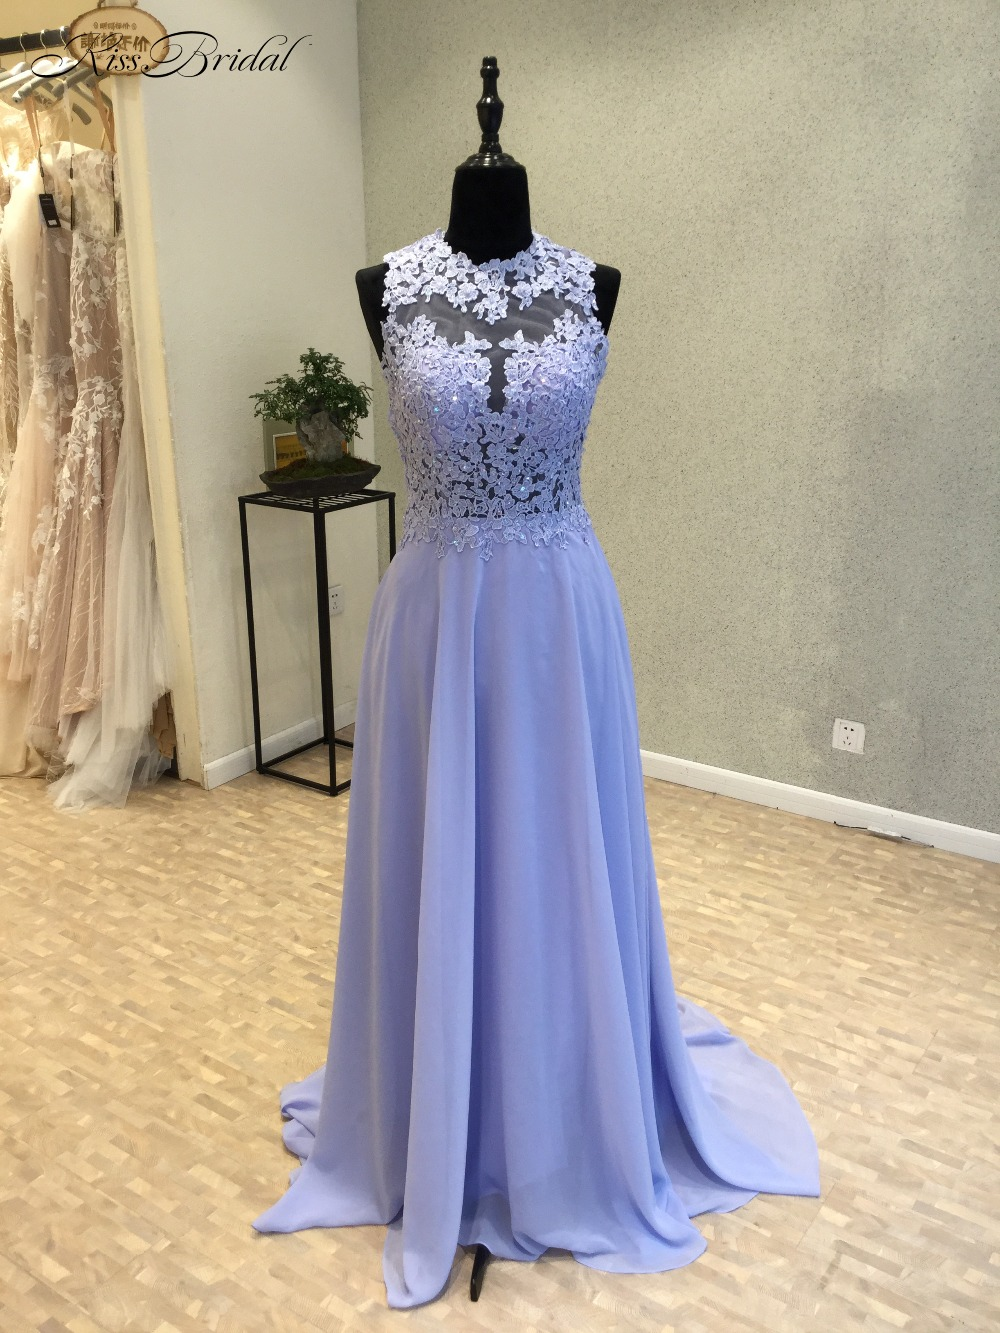 dd840b3afd New Simple Long Prom Dresses 2018 O-Neck Sleeveless Floor Length Lace  Chiffon A-Line Modern Party Dresses Evening Gowns kaftan